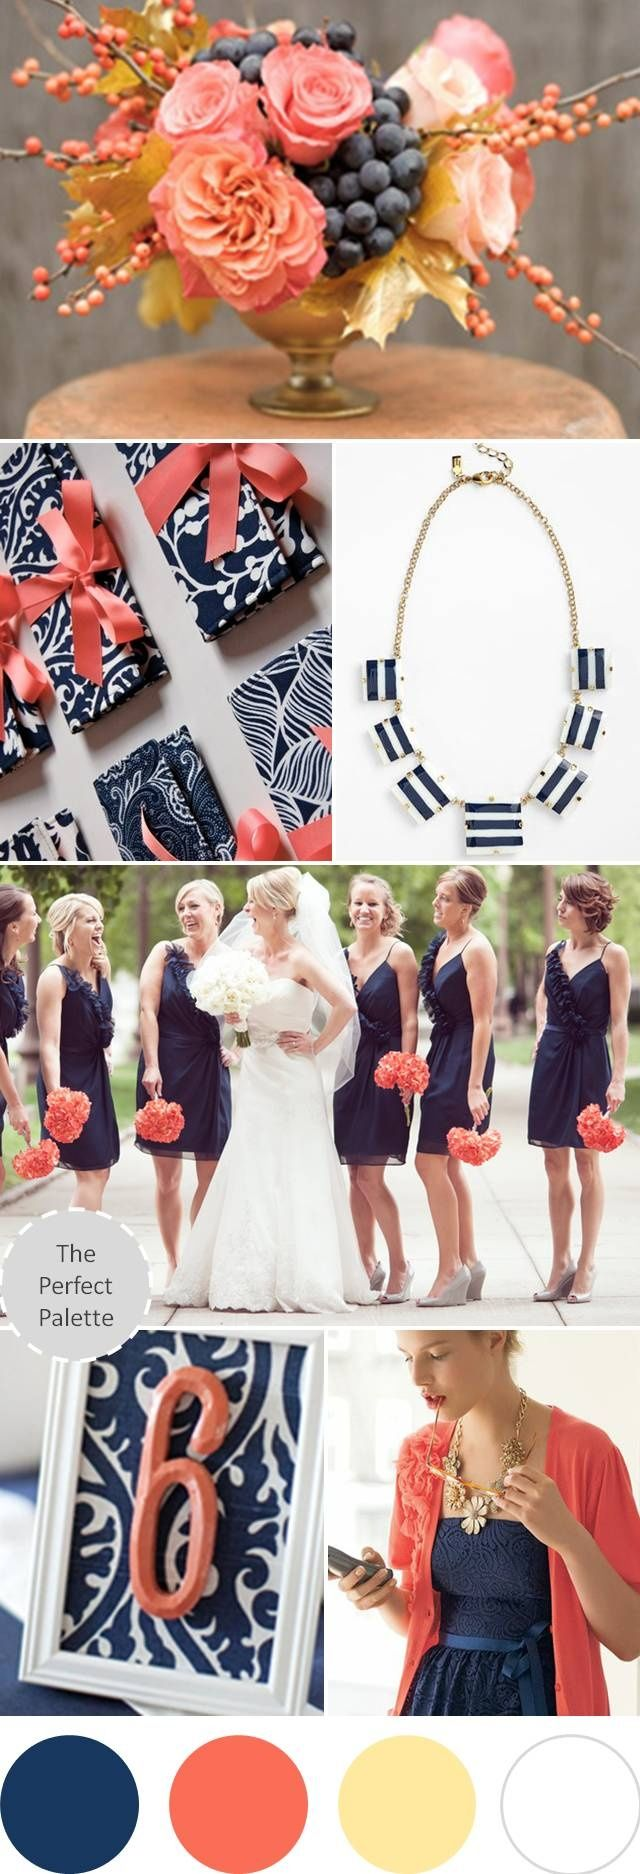 {Wedding Colors I love}: Navy Blue, Coral + Antique Gold.